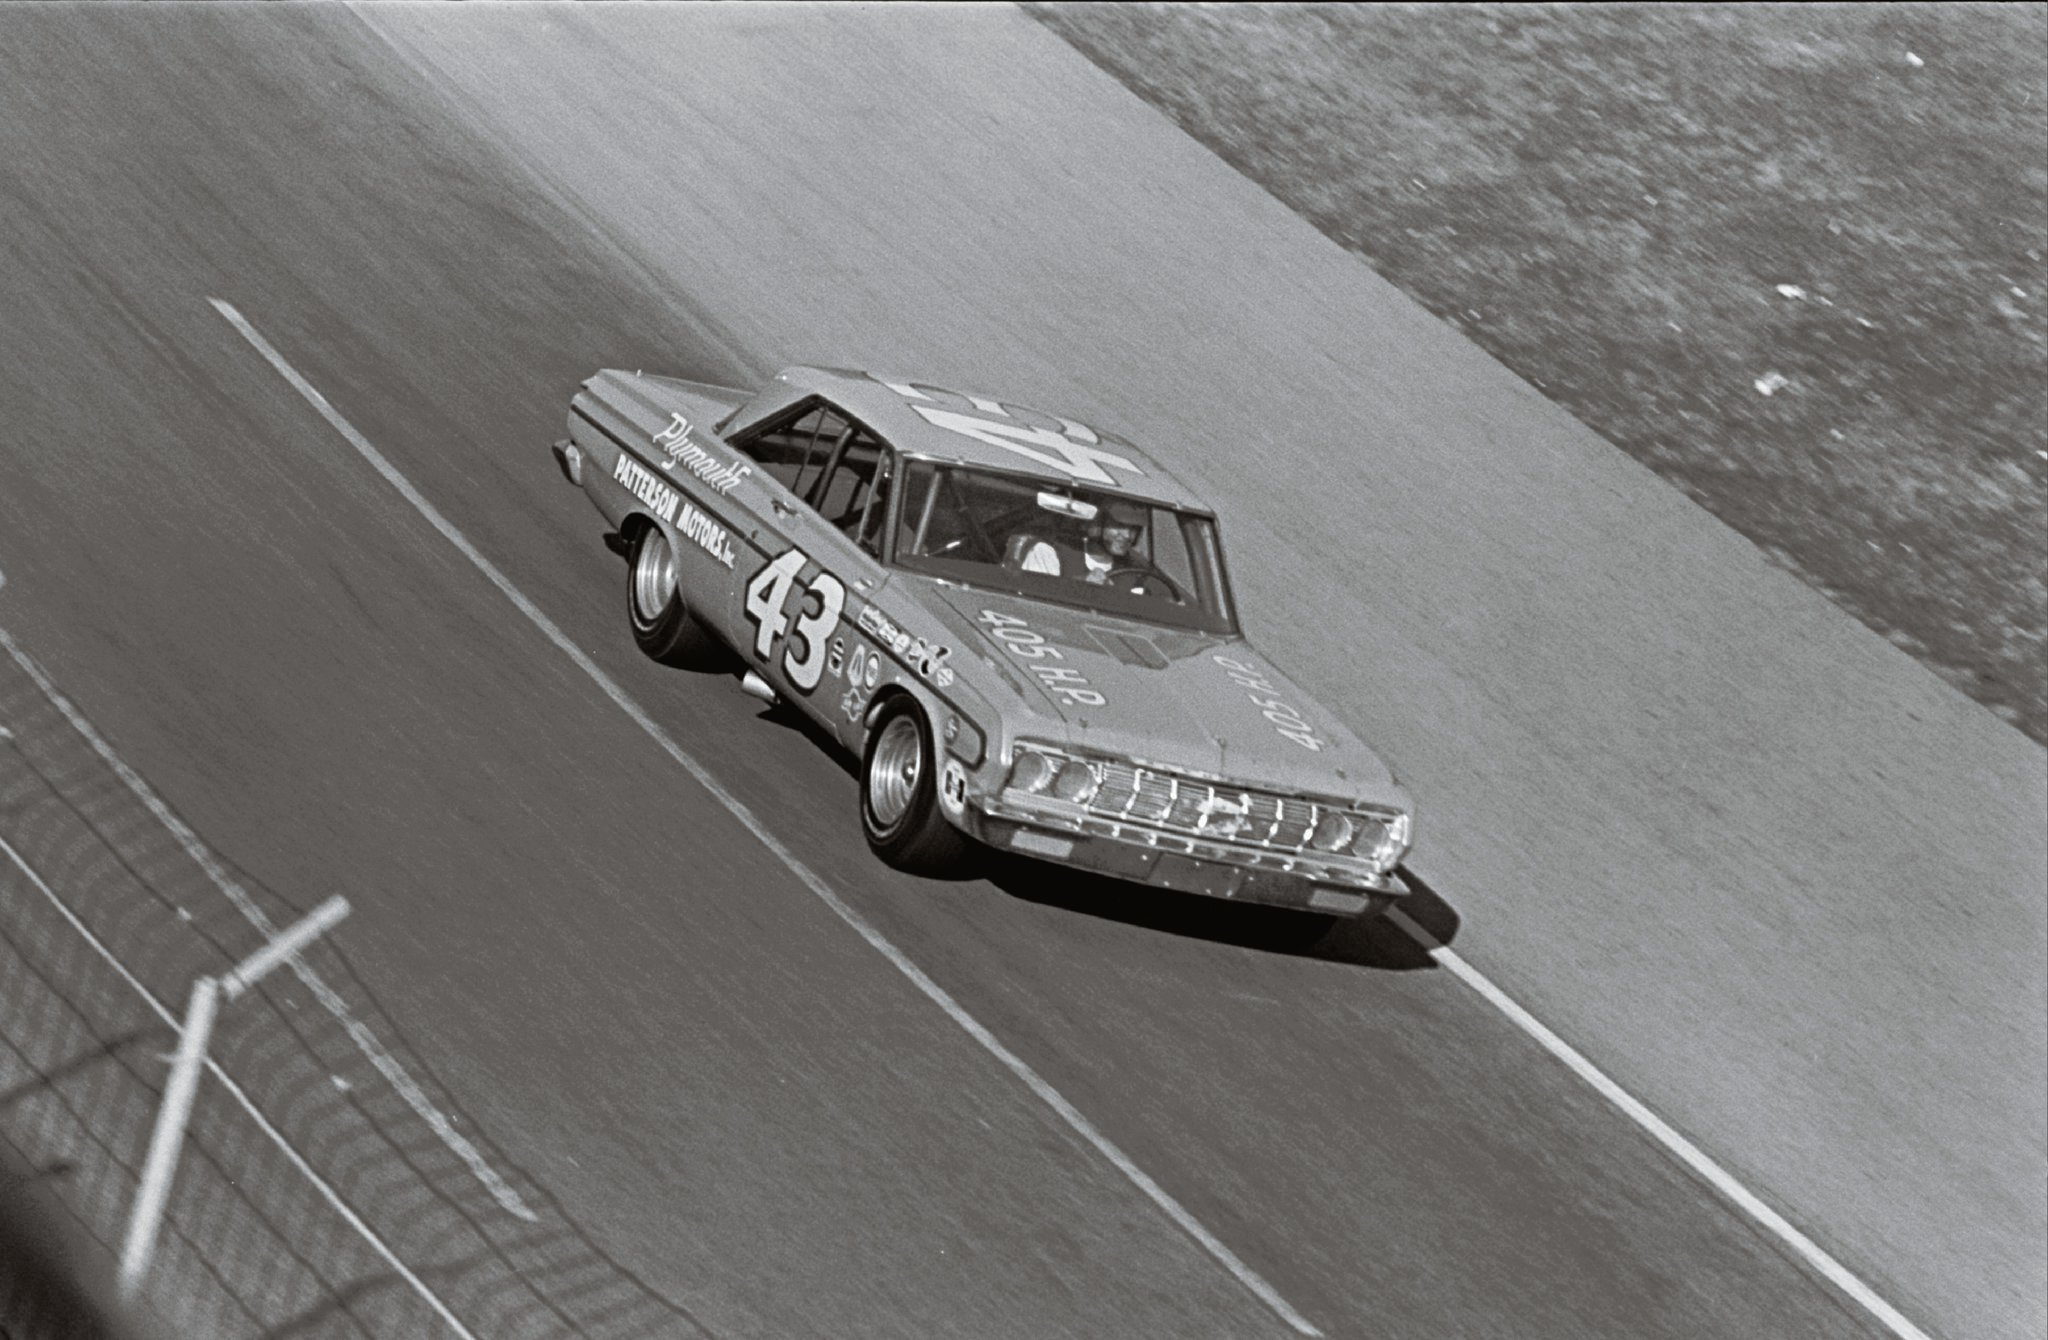 Brilliant driver, great pit crew, and superior engineering teamed up to bring about Richard Petty's dominance and ultimate victory at the '64 Daytona 500. Petty continued his winning ways during the '64 NASCAR season to eventually earn the '64 Grand National Championship.